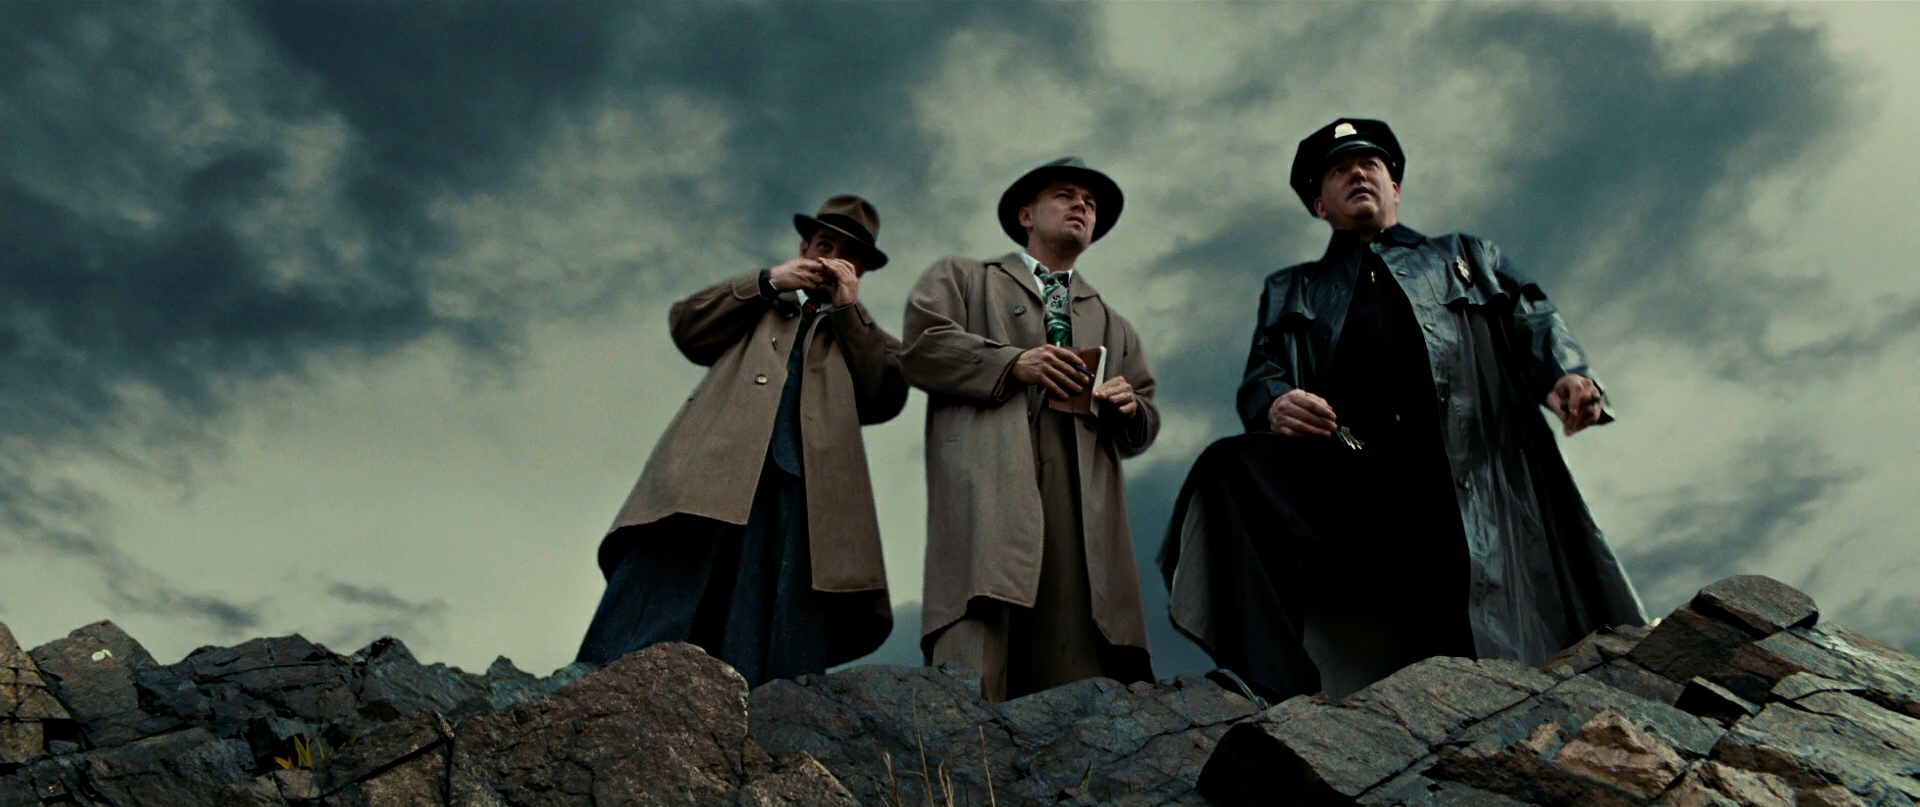 Leonardo DiCaprio and Mark Ruffalo in Shutter Island